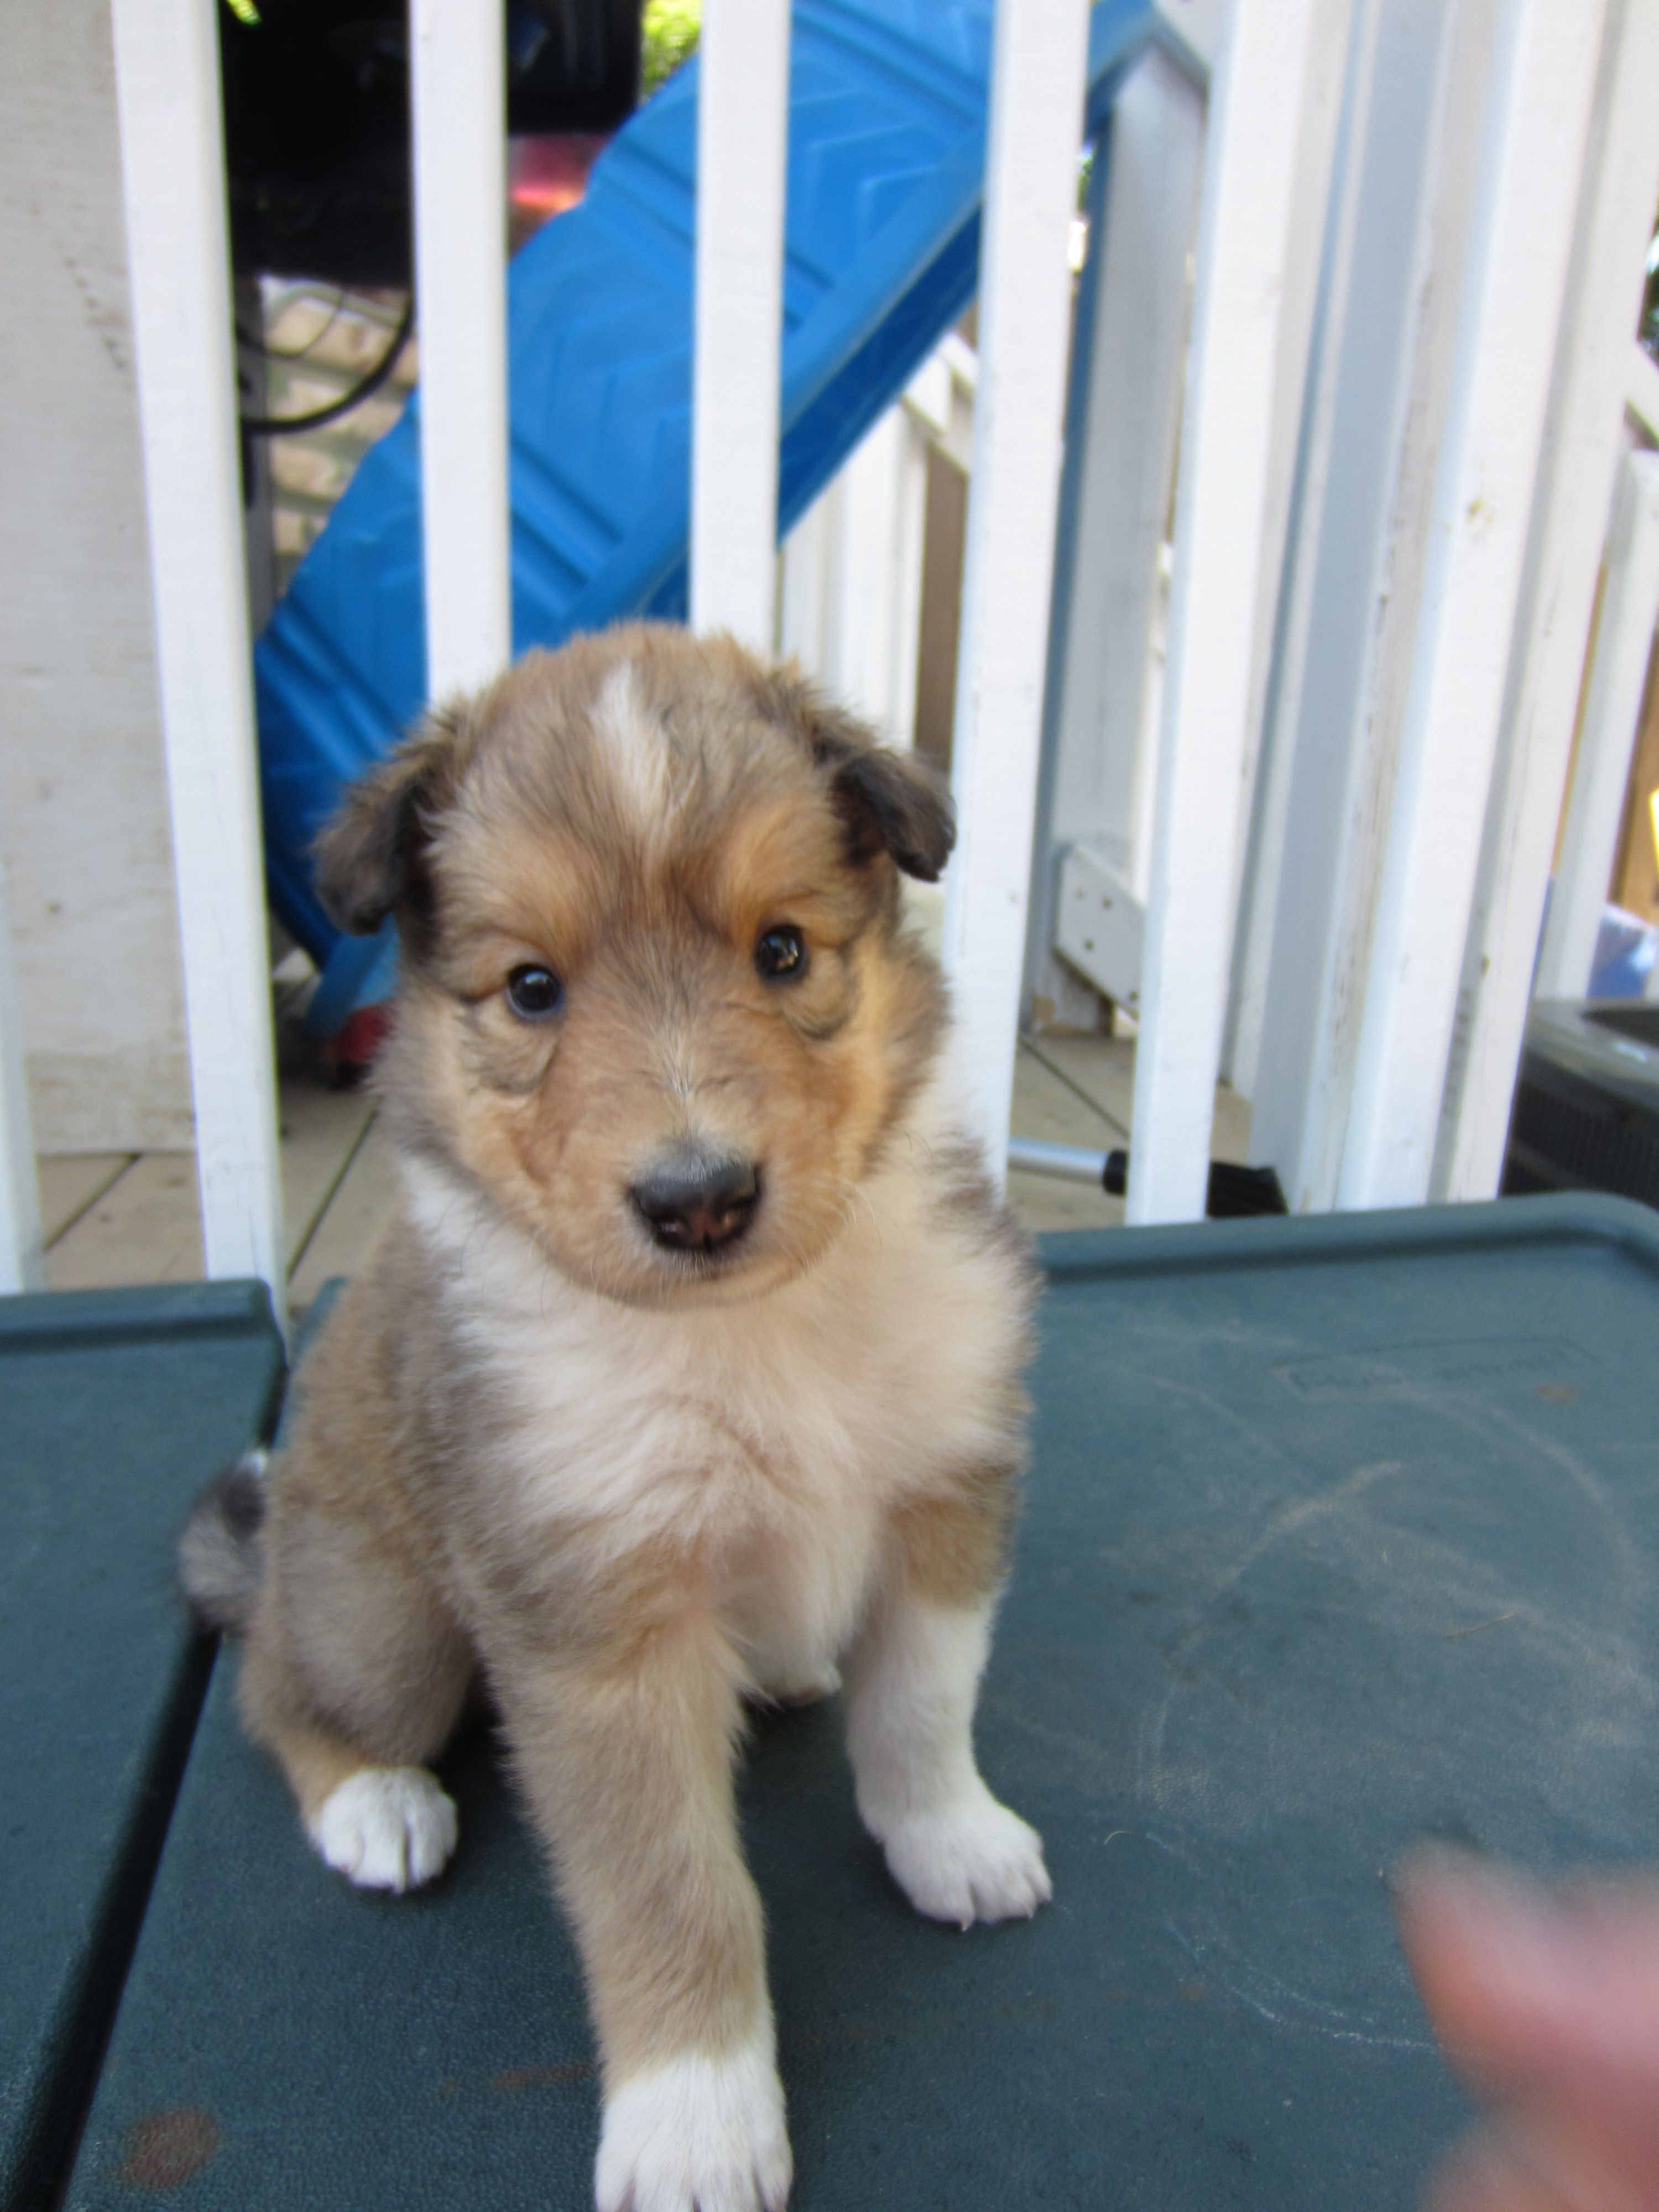 Rough Collie Puppies For Sale 3 Boys And 2 Girls They Are From A Champion Line But Non Registered Litter Both P Rough Collie Puppy Puppies Cute Dogs Breeds